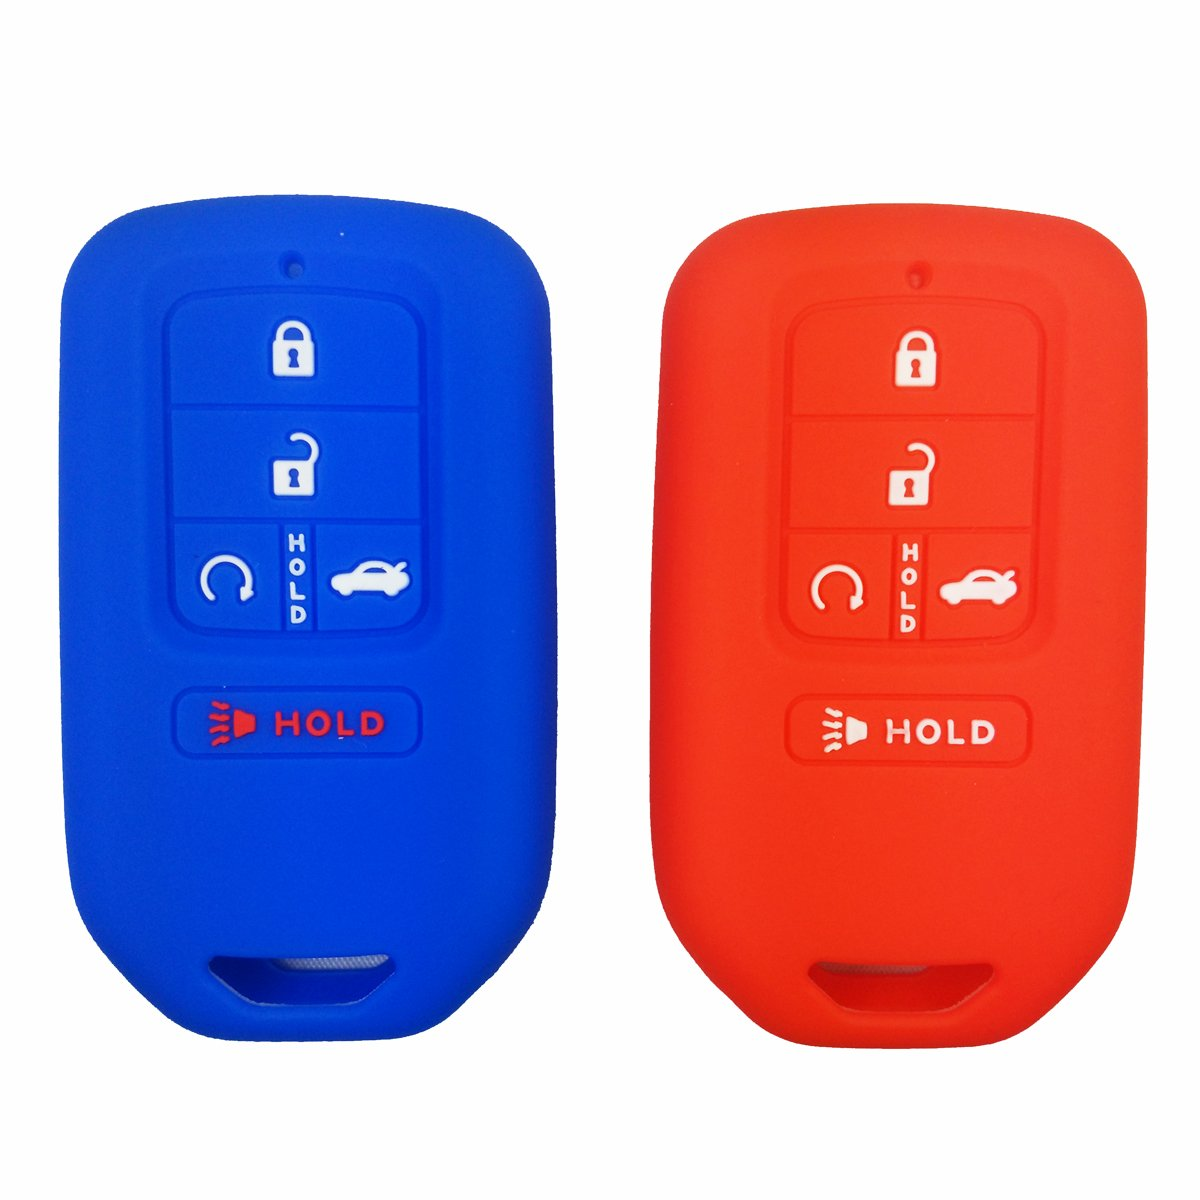 Coolbestda Silicone Key Fob Skin Remote Case Cover Wallet Keyless Jacket Full Covered for A2C81642600 2018 2017 2016 2015 Honda Accord Civic CR-V CRV Pilot EX EX-L Touring Premium 4332963943